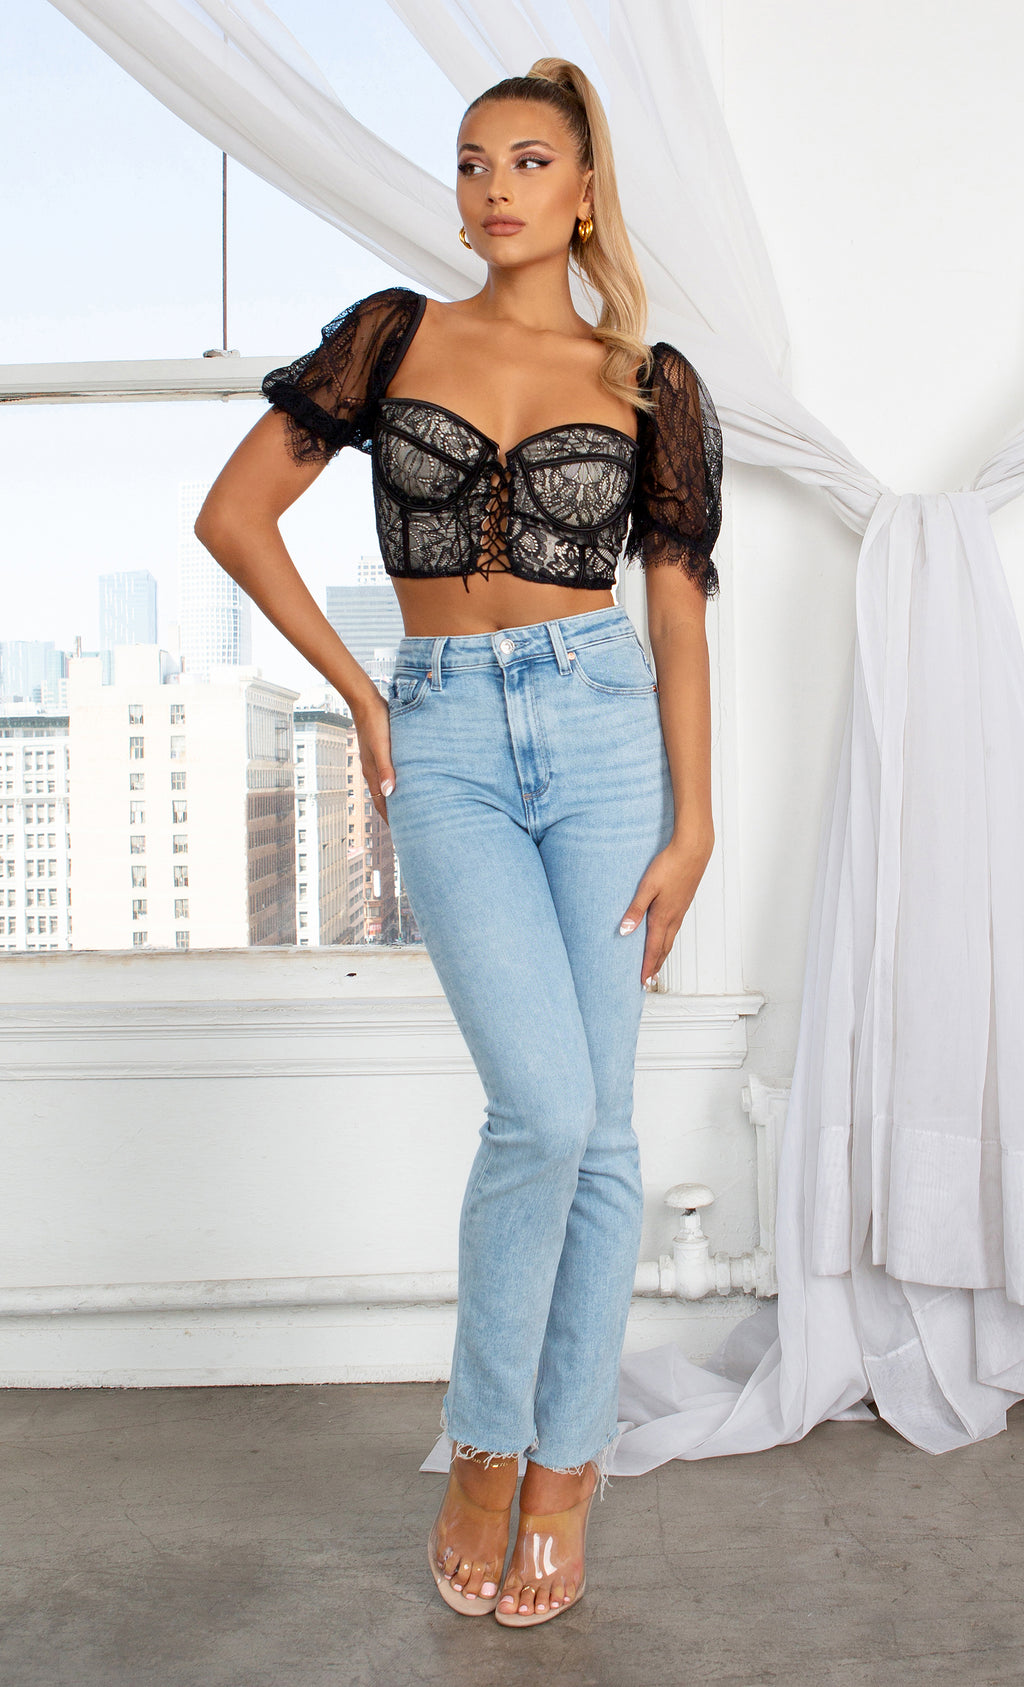 Private Meeting Black Sheer Mesh Lace Bustier Embroidery Short Puff Sleeve V Neck Lace Up Corset Blouse Crop Top